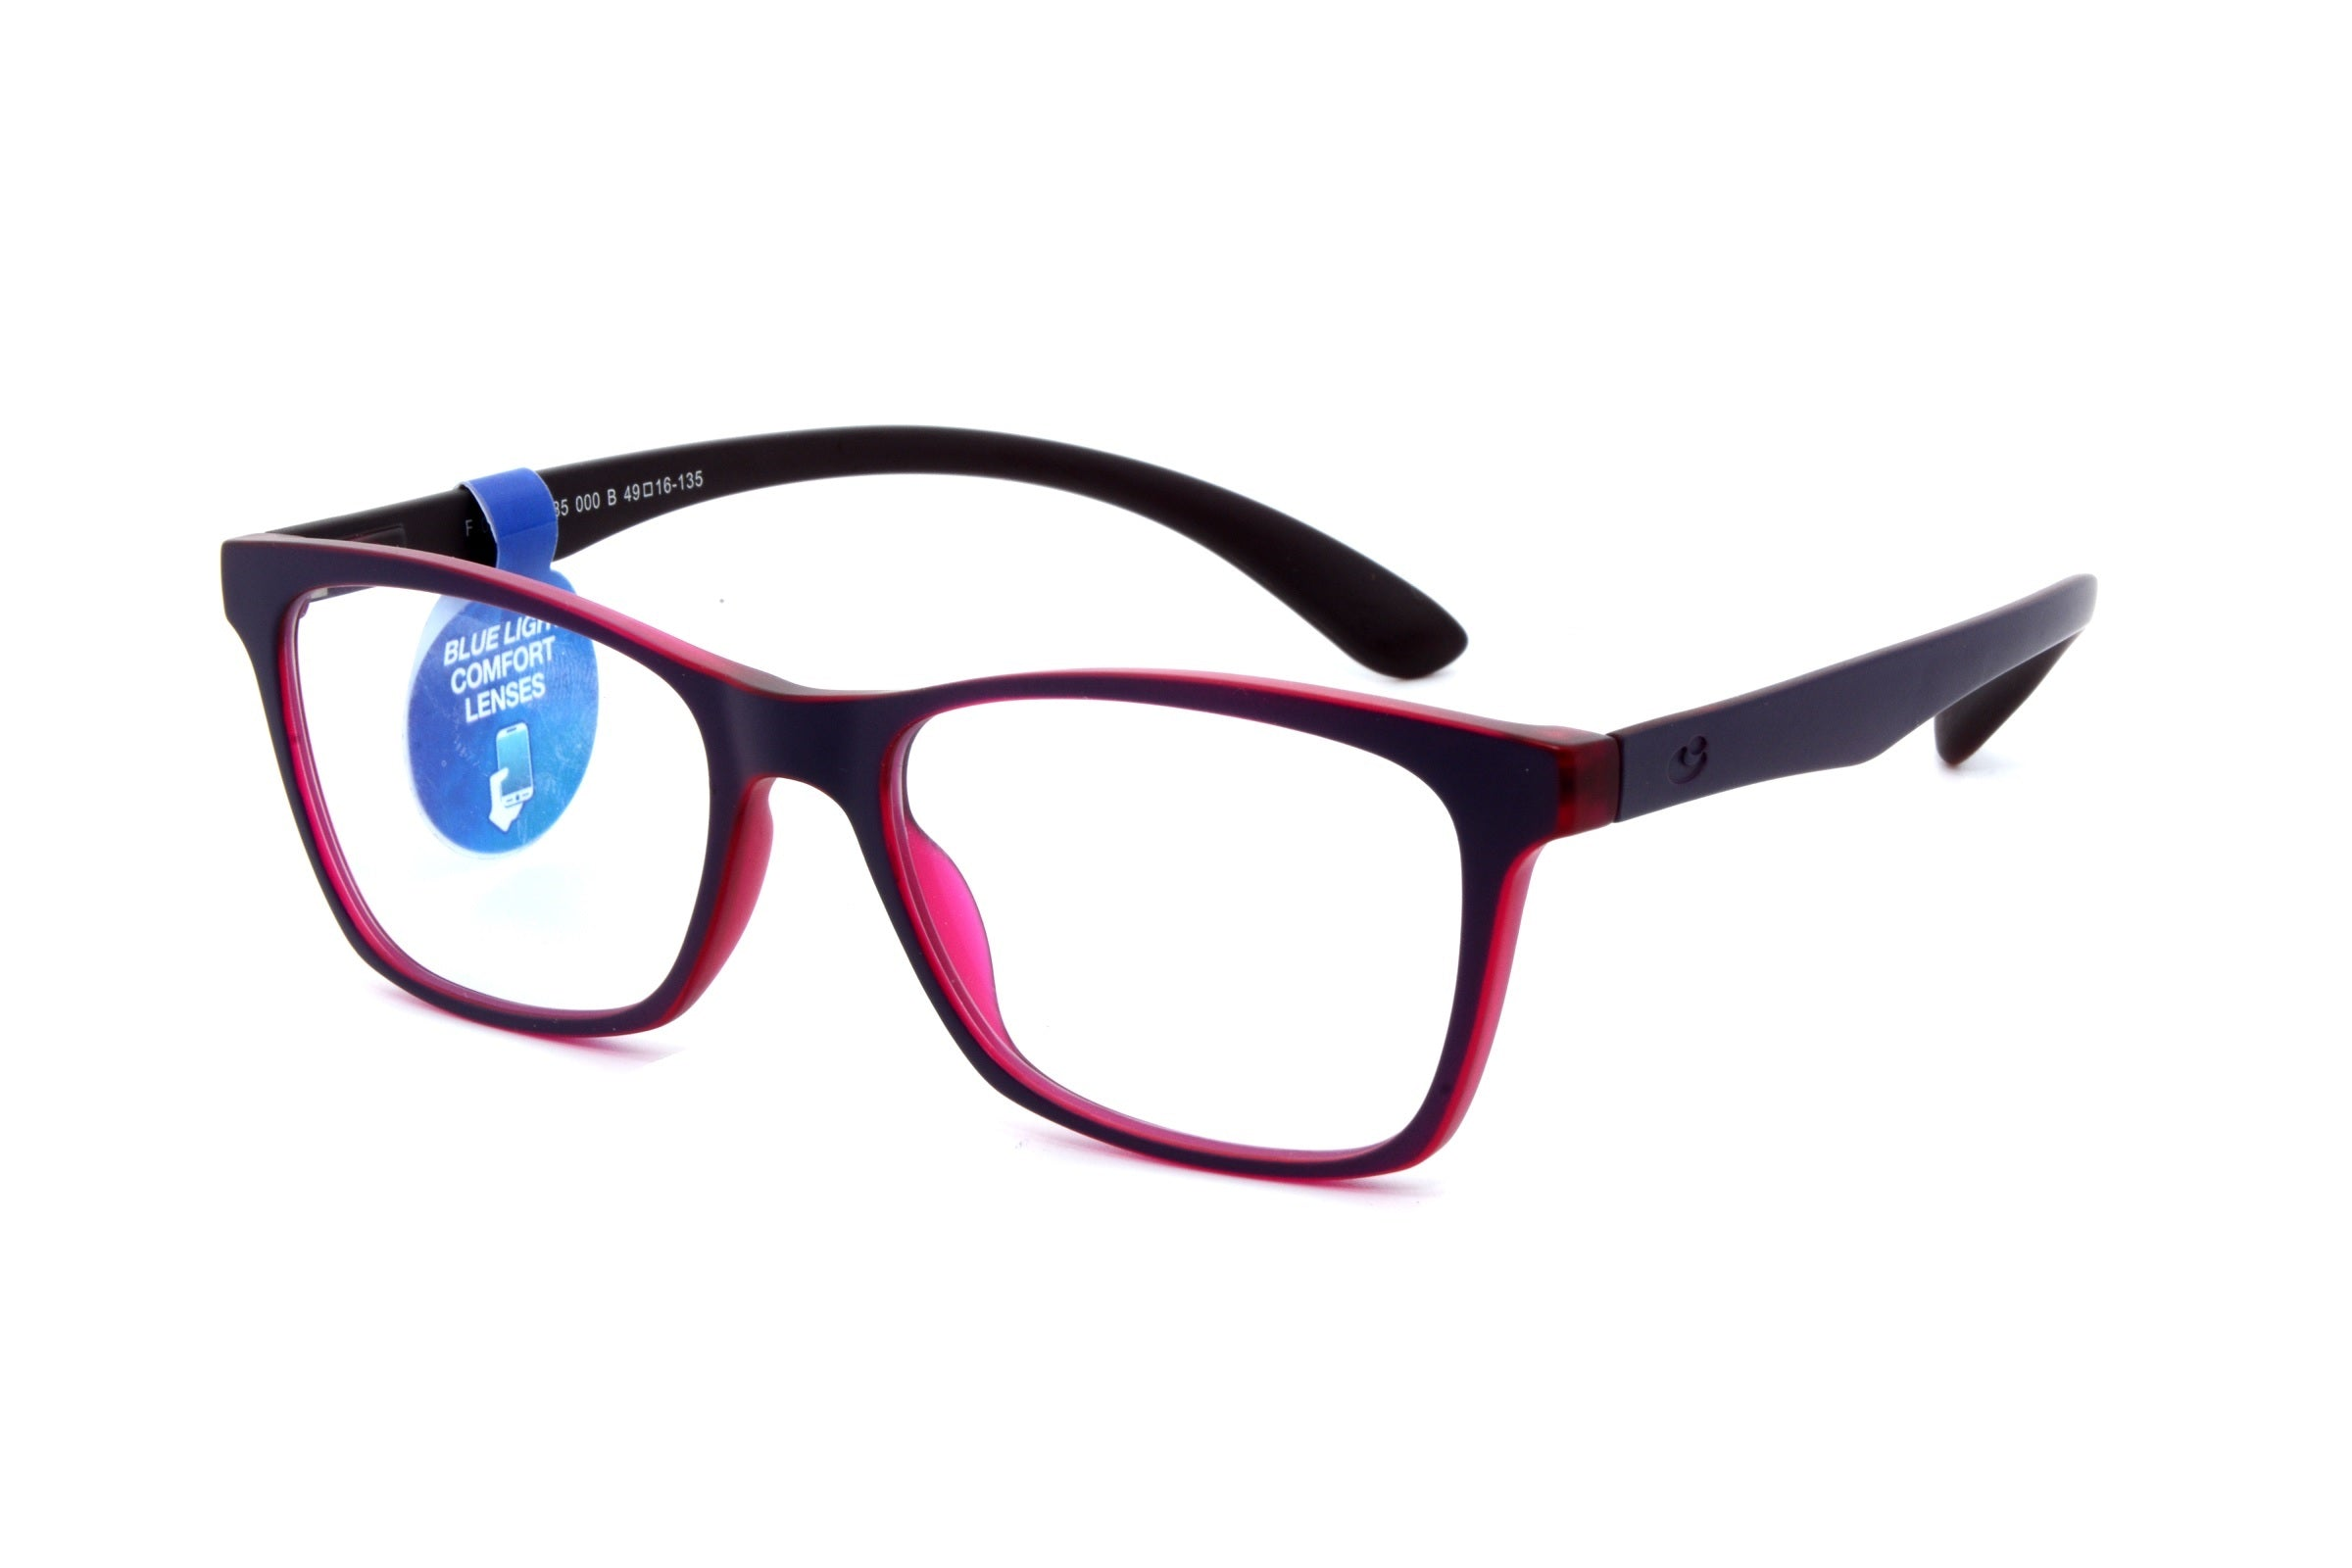 Centrostyle eyewear Blue light F027049285000B - Optics Trading